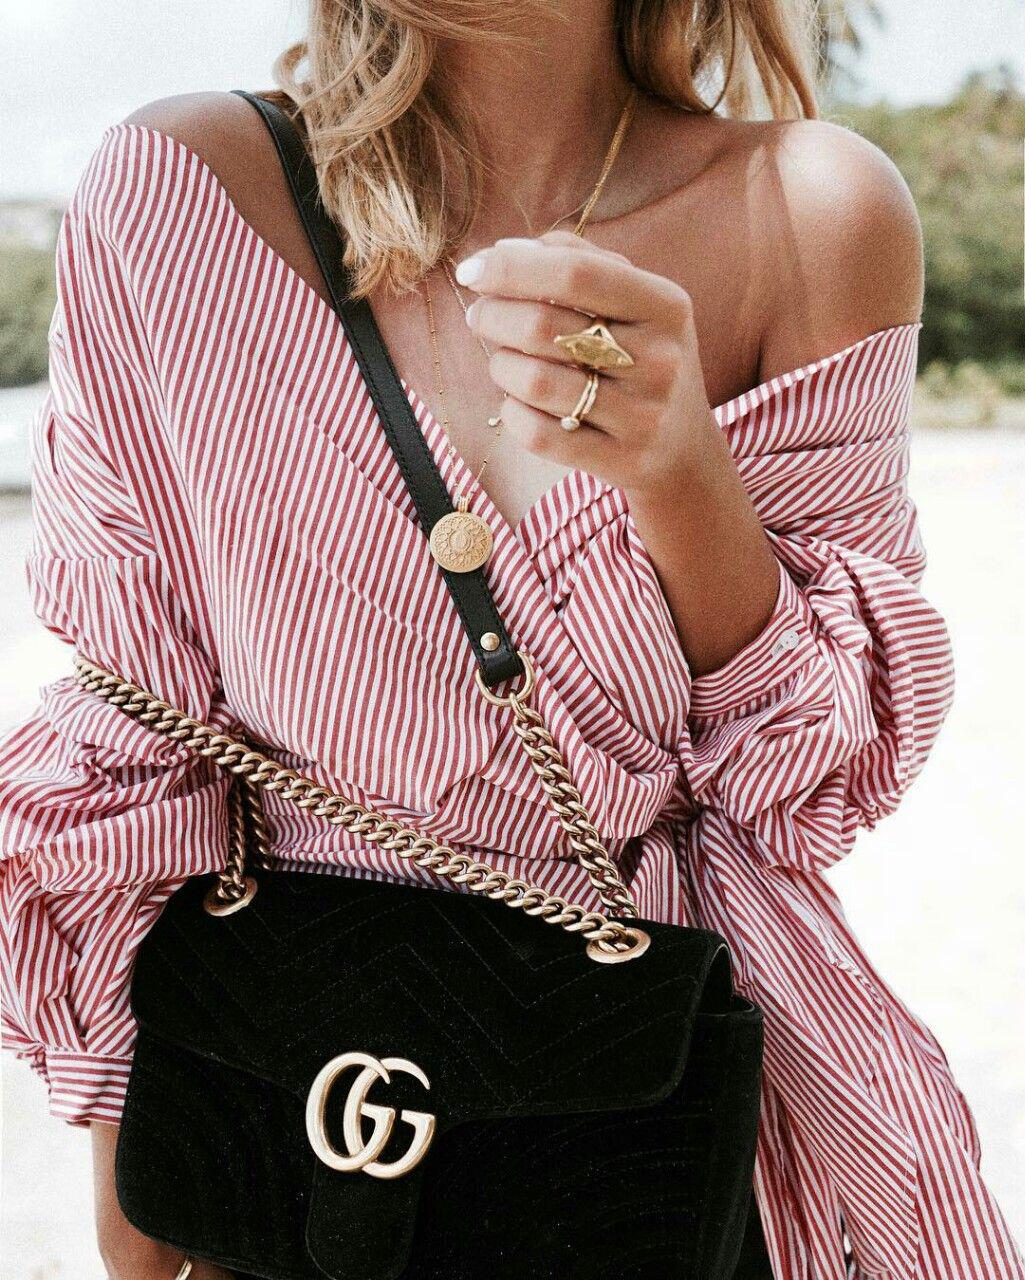 14 lovely ways to wear striped off the shoulder tops in spring 4 - 14 lovely ways to wear striped off the shoulder tops in spring